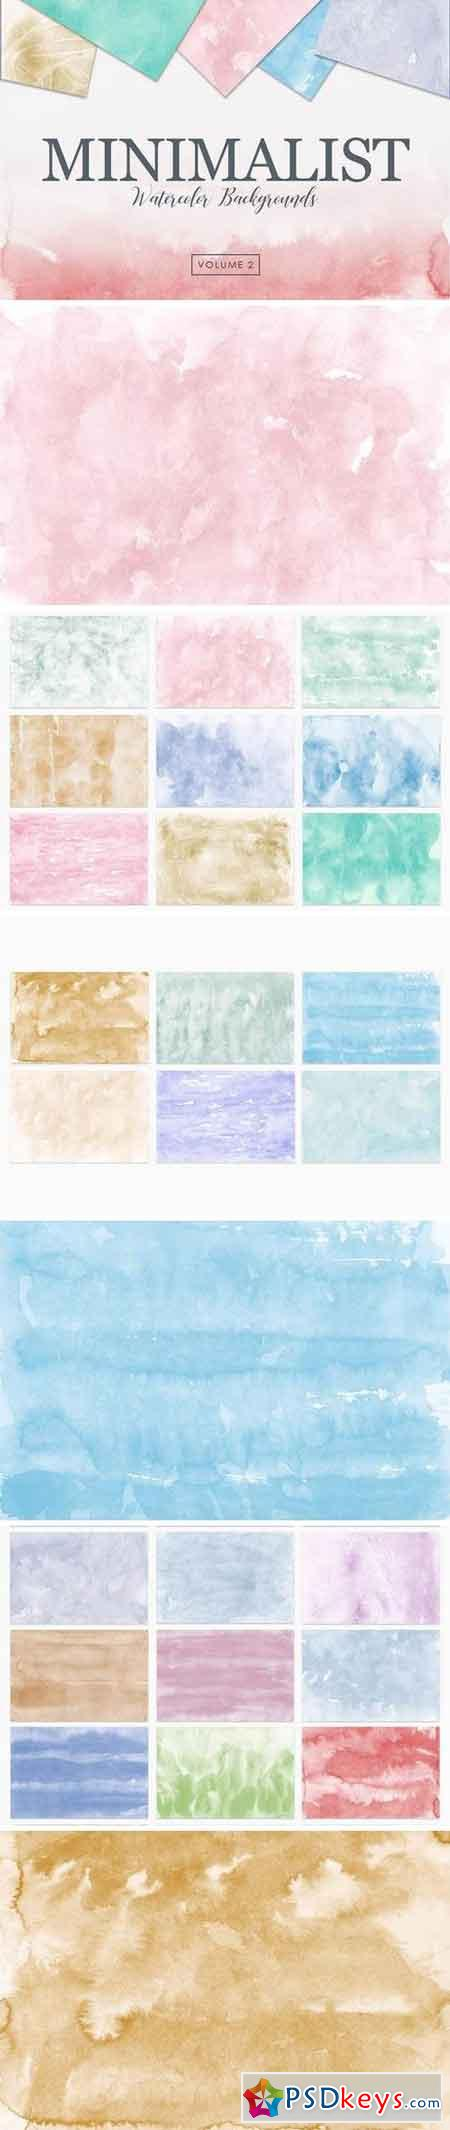 Minimalist Watercolor Backgrounds Vol 2